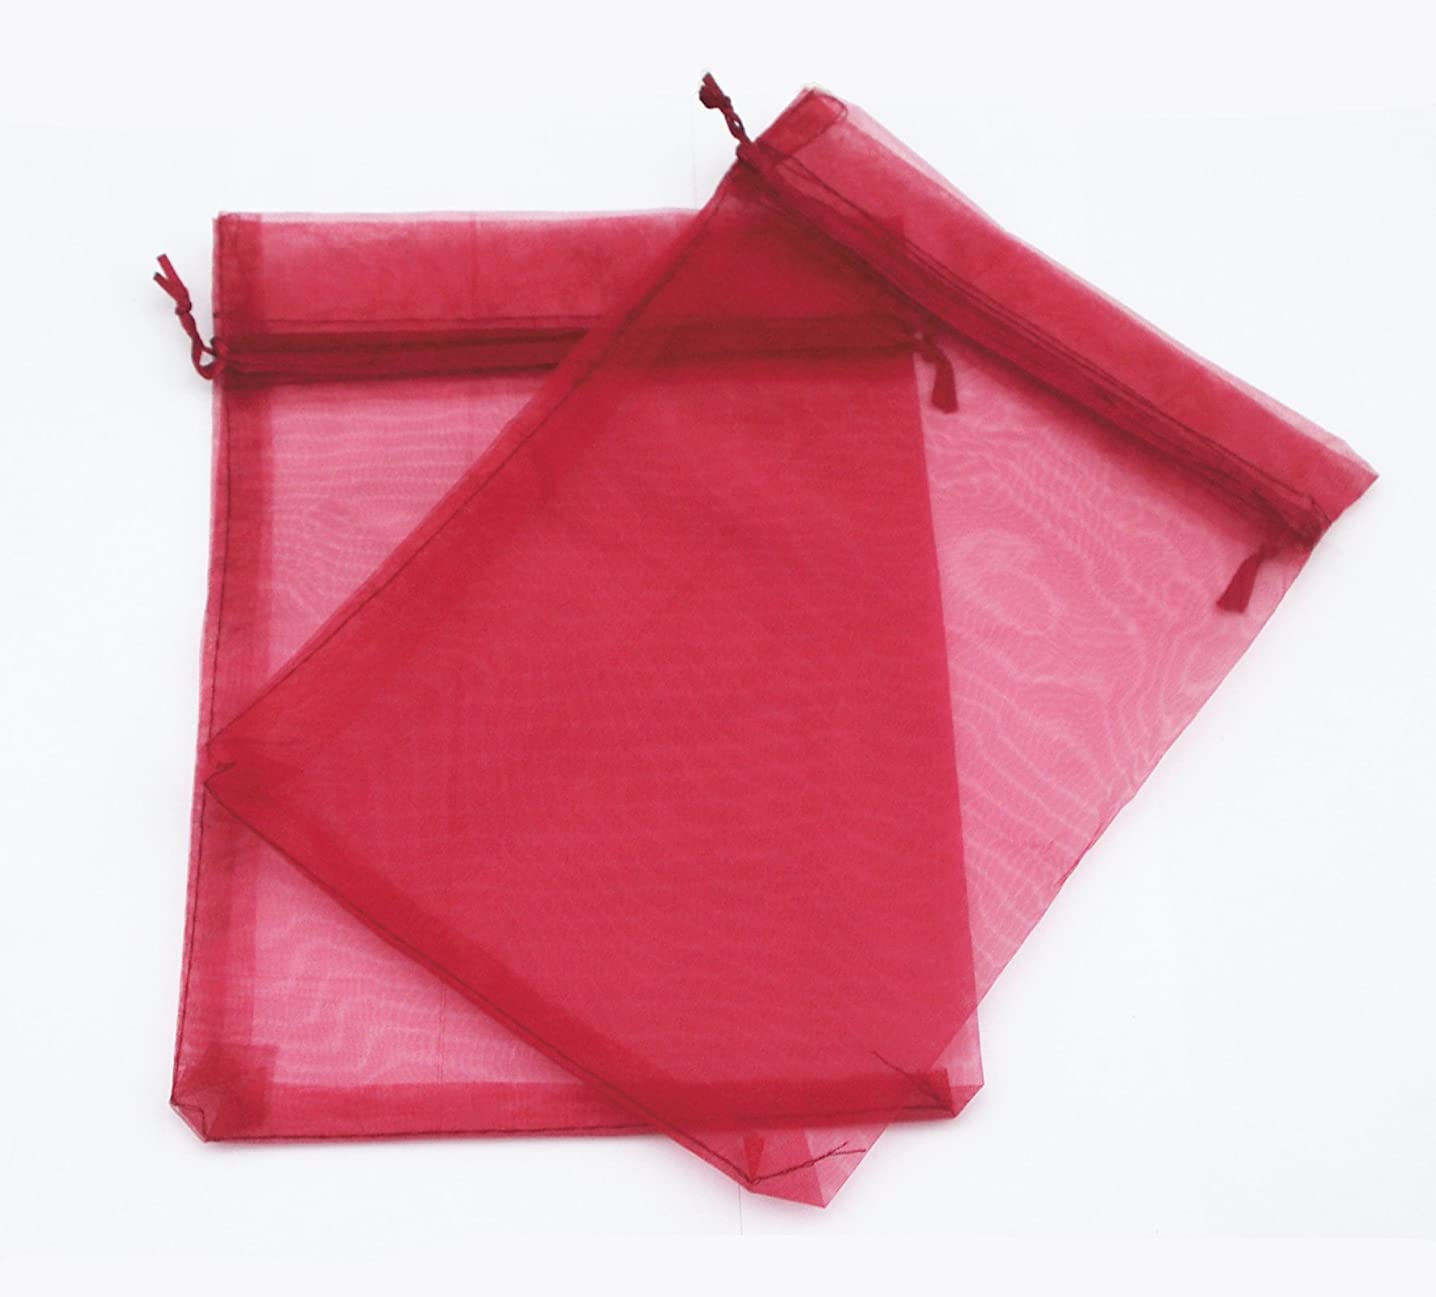 AEAOA 50 Pcs 6x8 Inch Organza Bags Drawstring Wedding Favor Bags Organza Gift Pouches Bags for Wedding Jewelry Party (Burgundy/Dark Red)